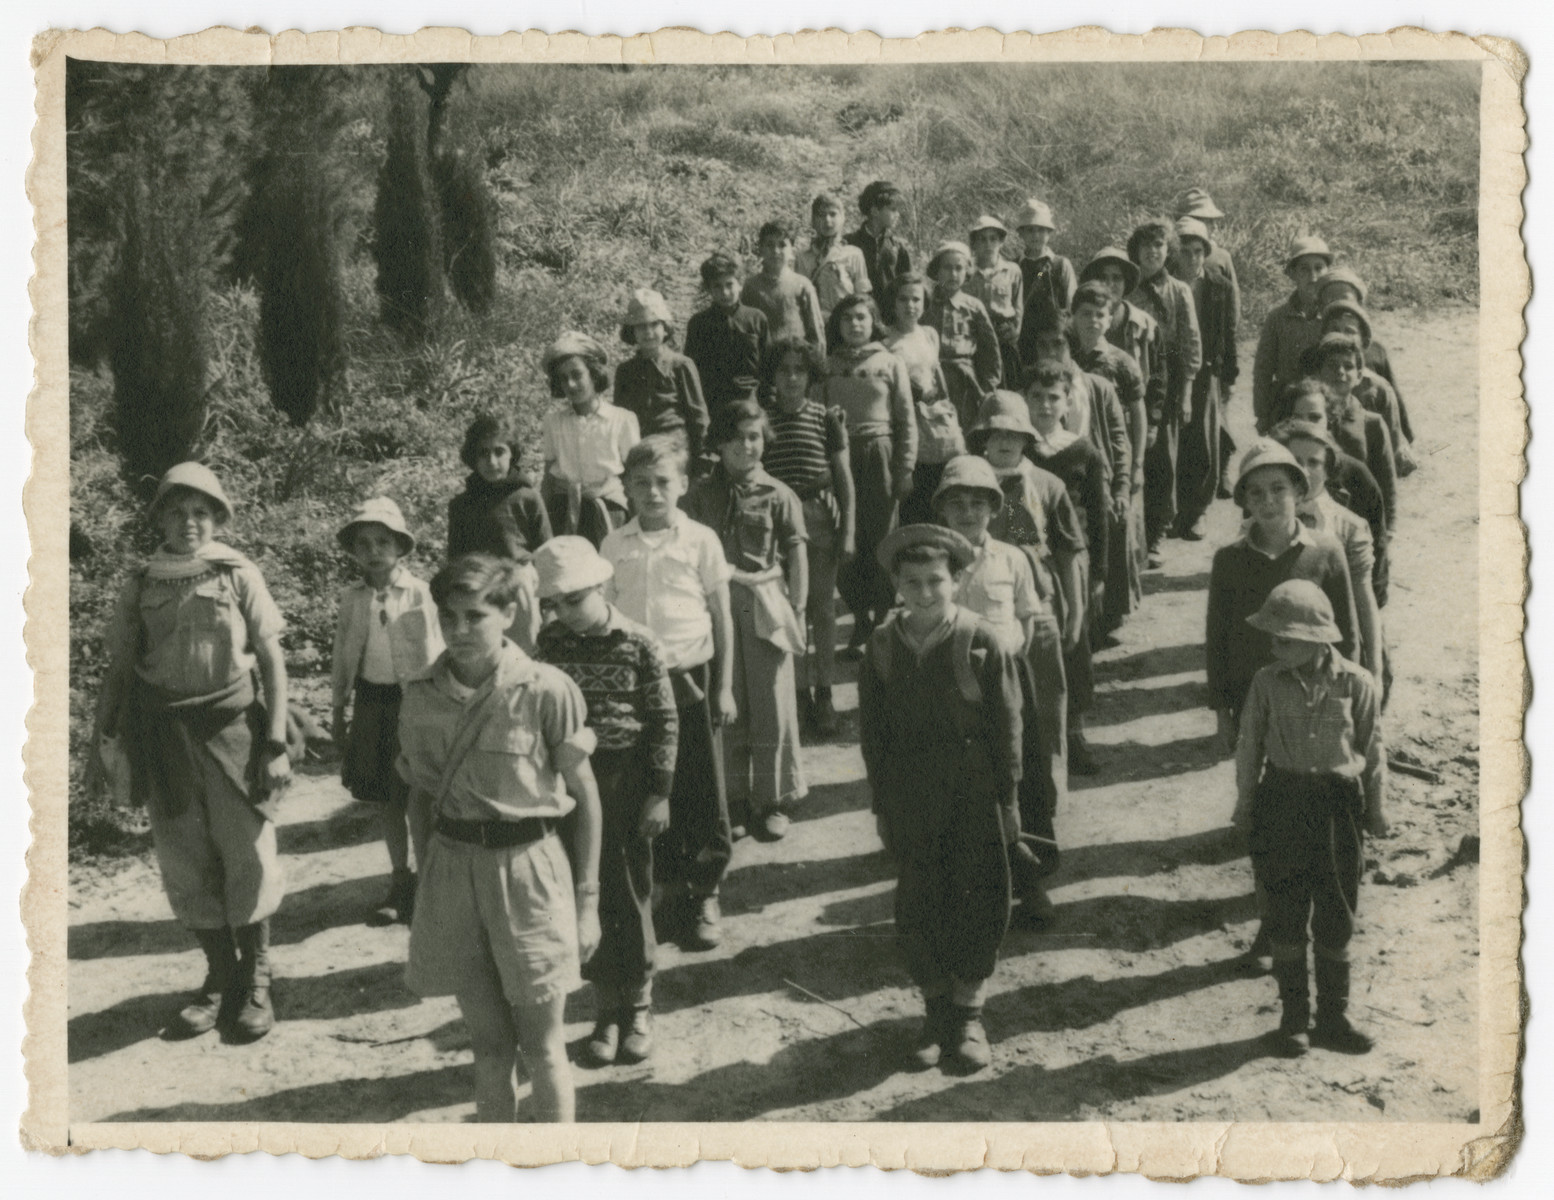 Nestor Hochglaube stands in formation with a group of children at the Hadassim youth village in Israel.  He is pictured in the fourth row, second from the right.